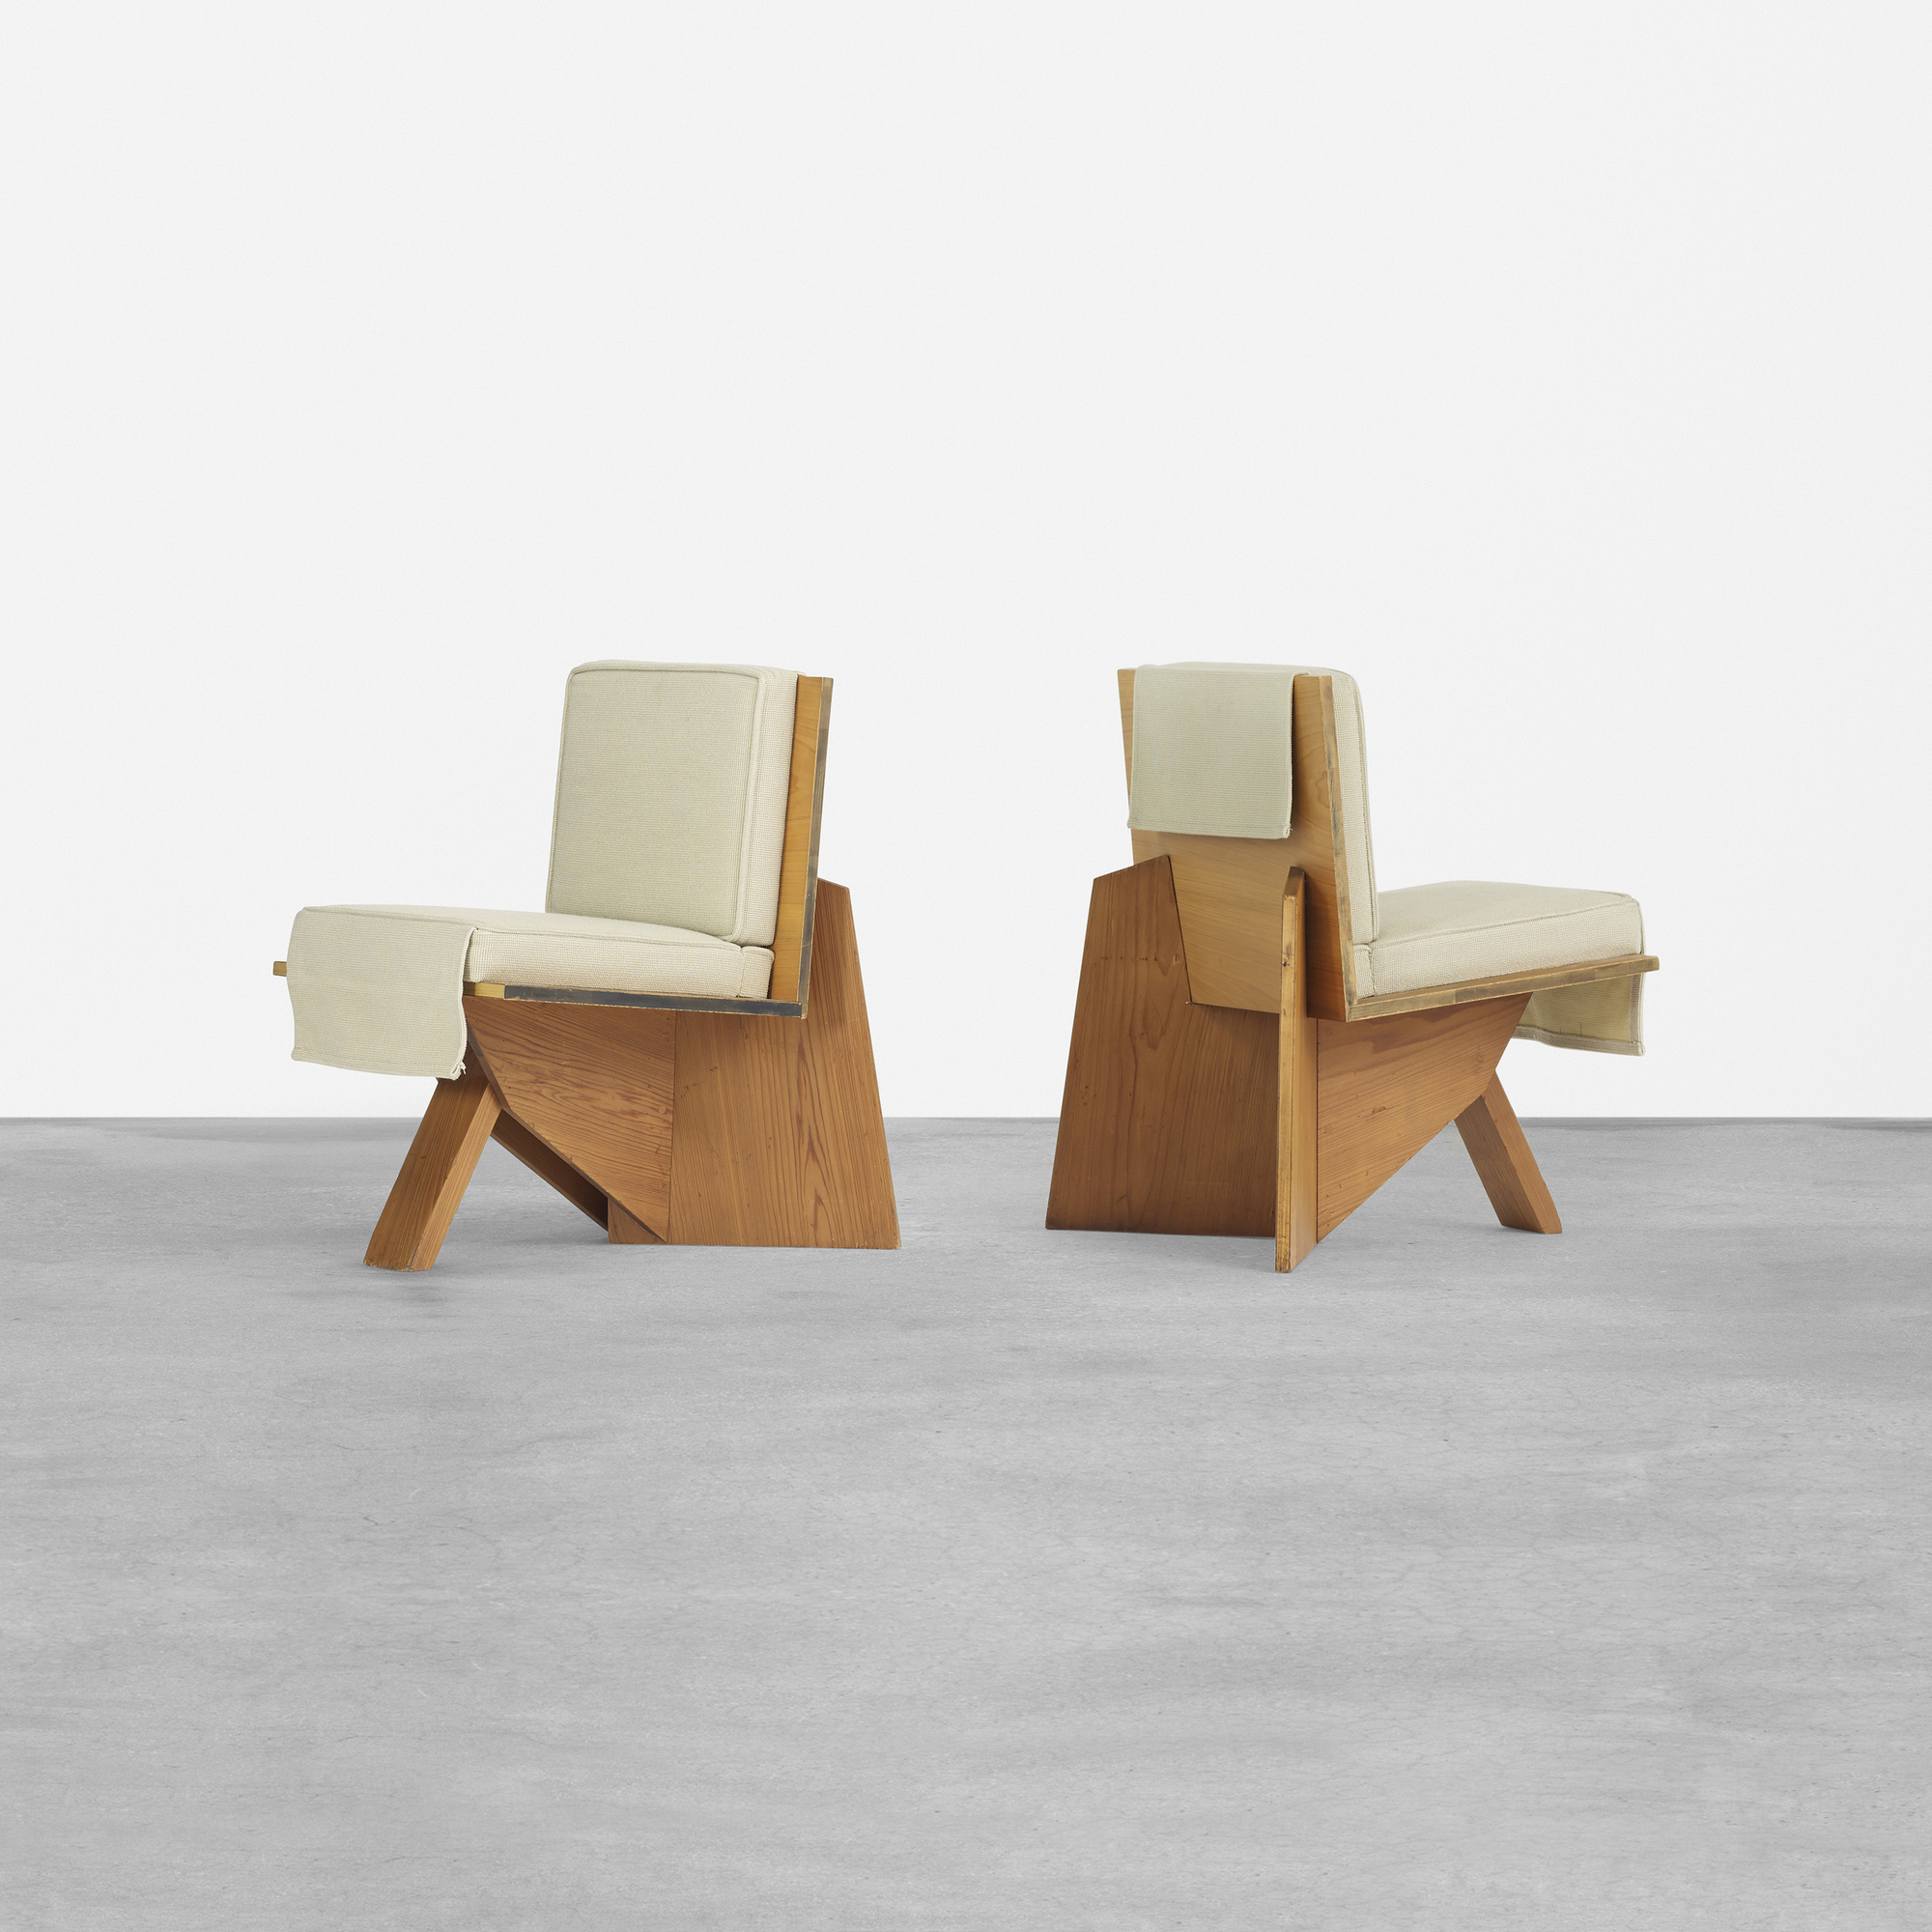 Frank Lloyd Wright Chairs 148 Frank Lloyd Wright Pair Of Lounge Chairs From The